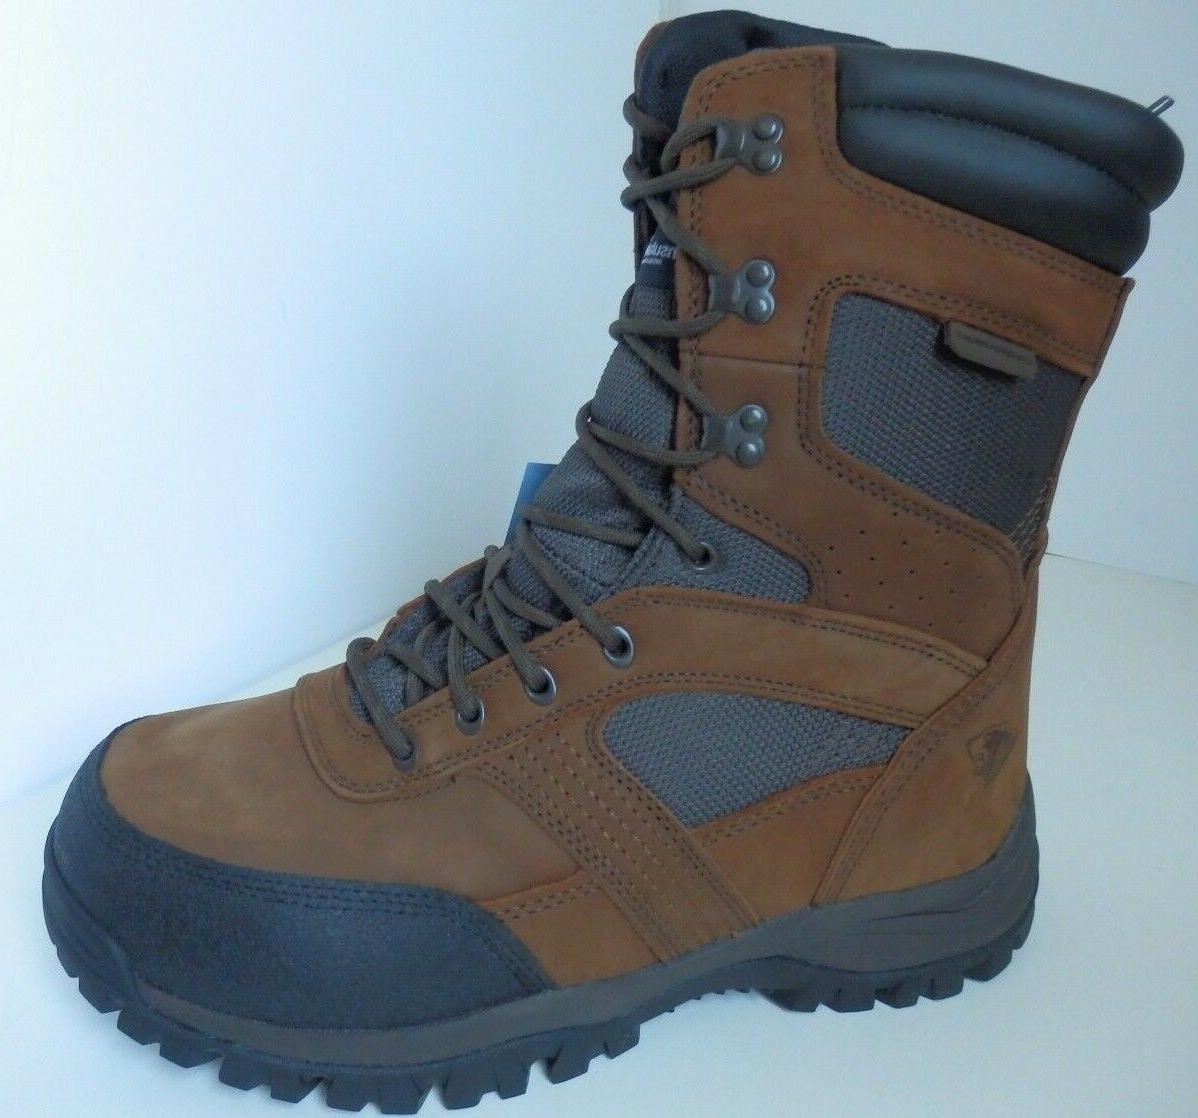 New MEN'S Hunting Leather Boots, Wide